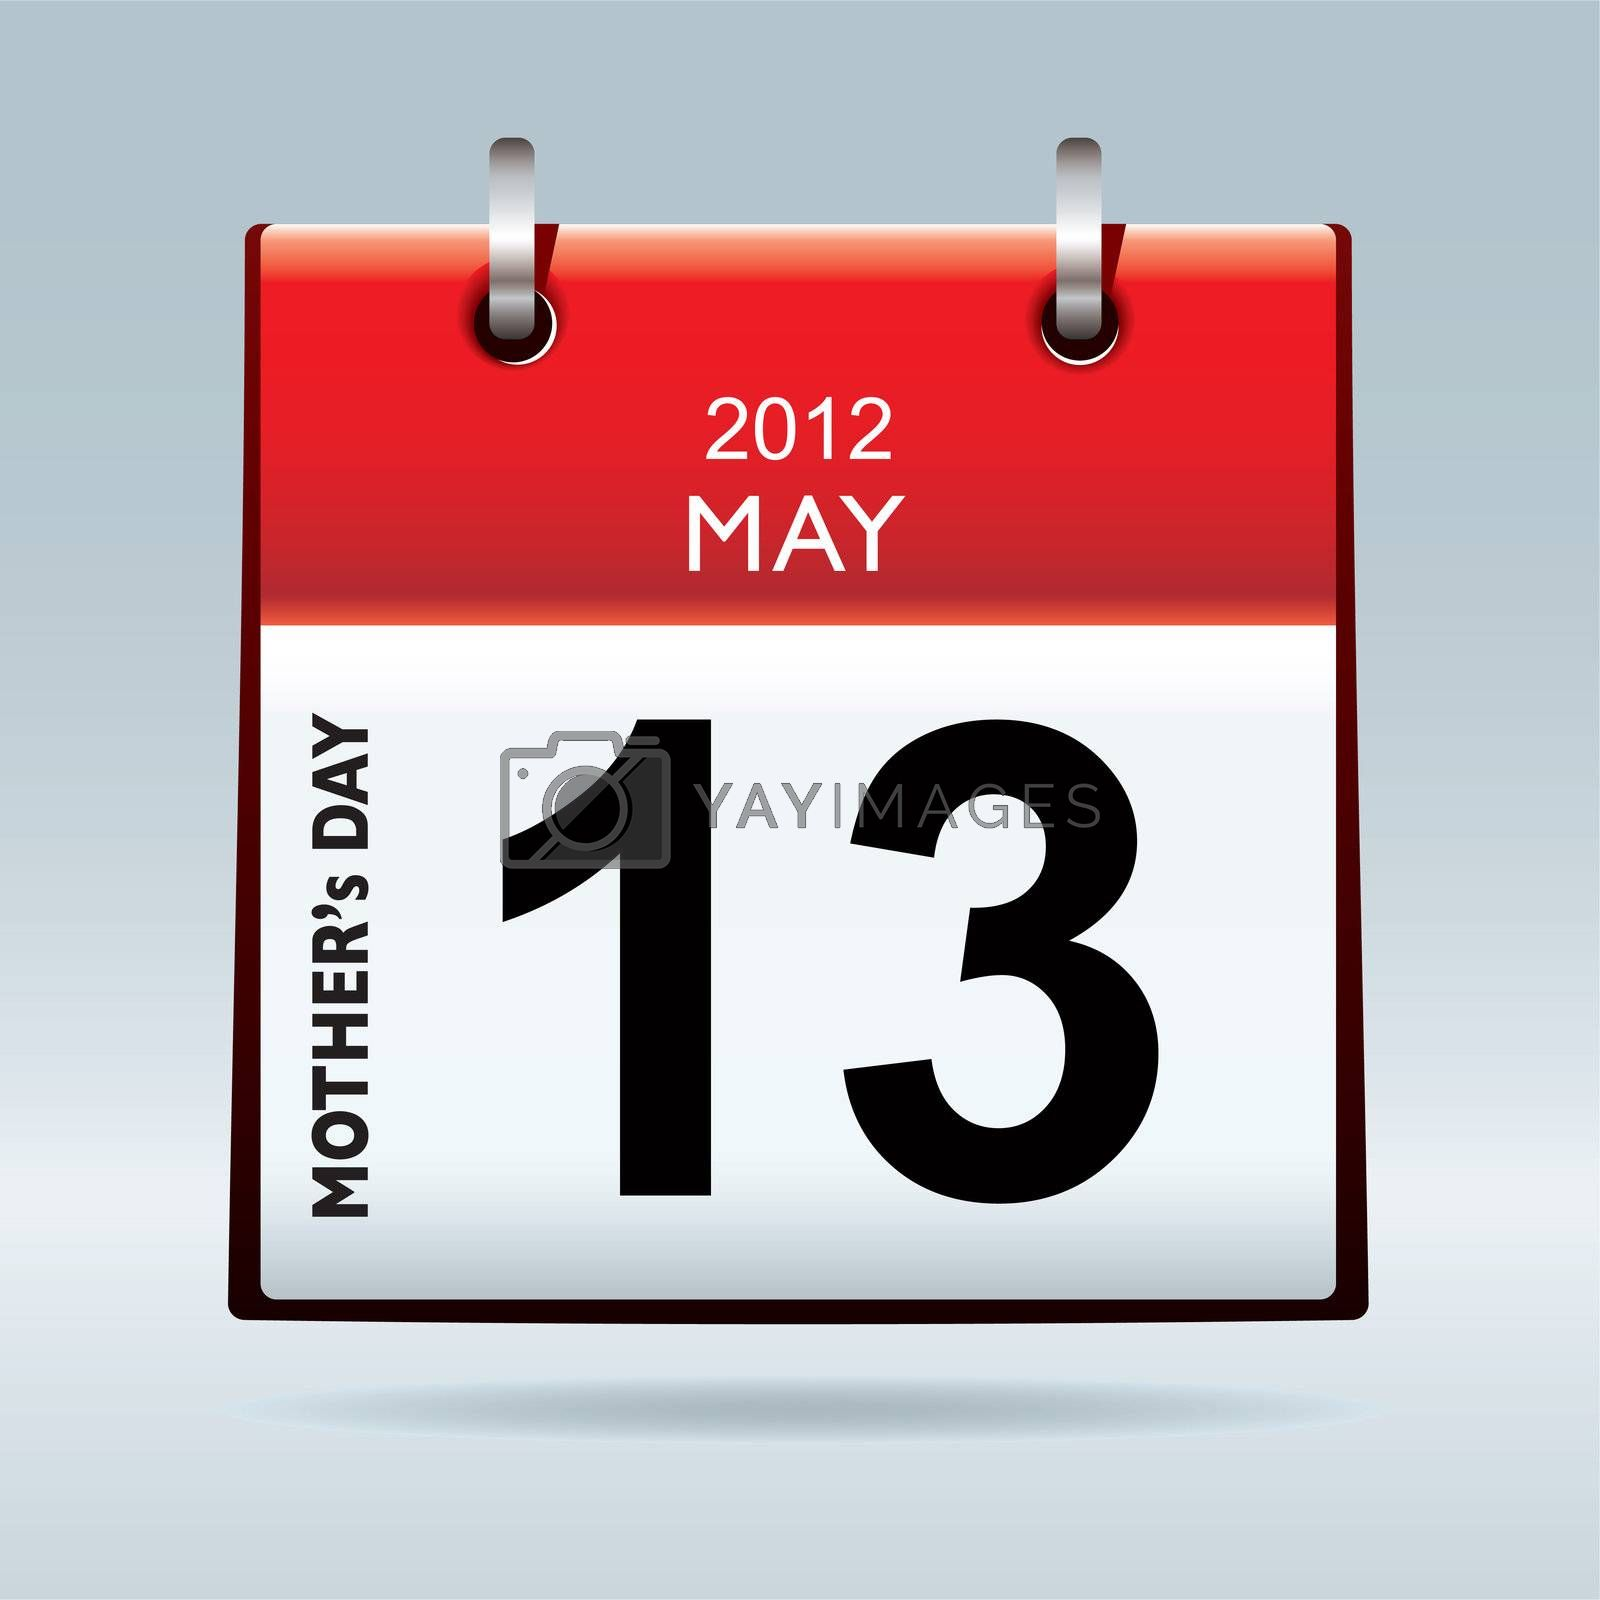 United states and canada mothers day for 2012 on calendar